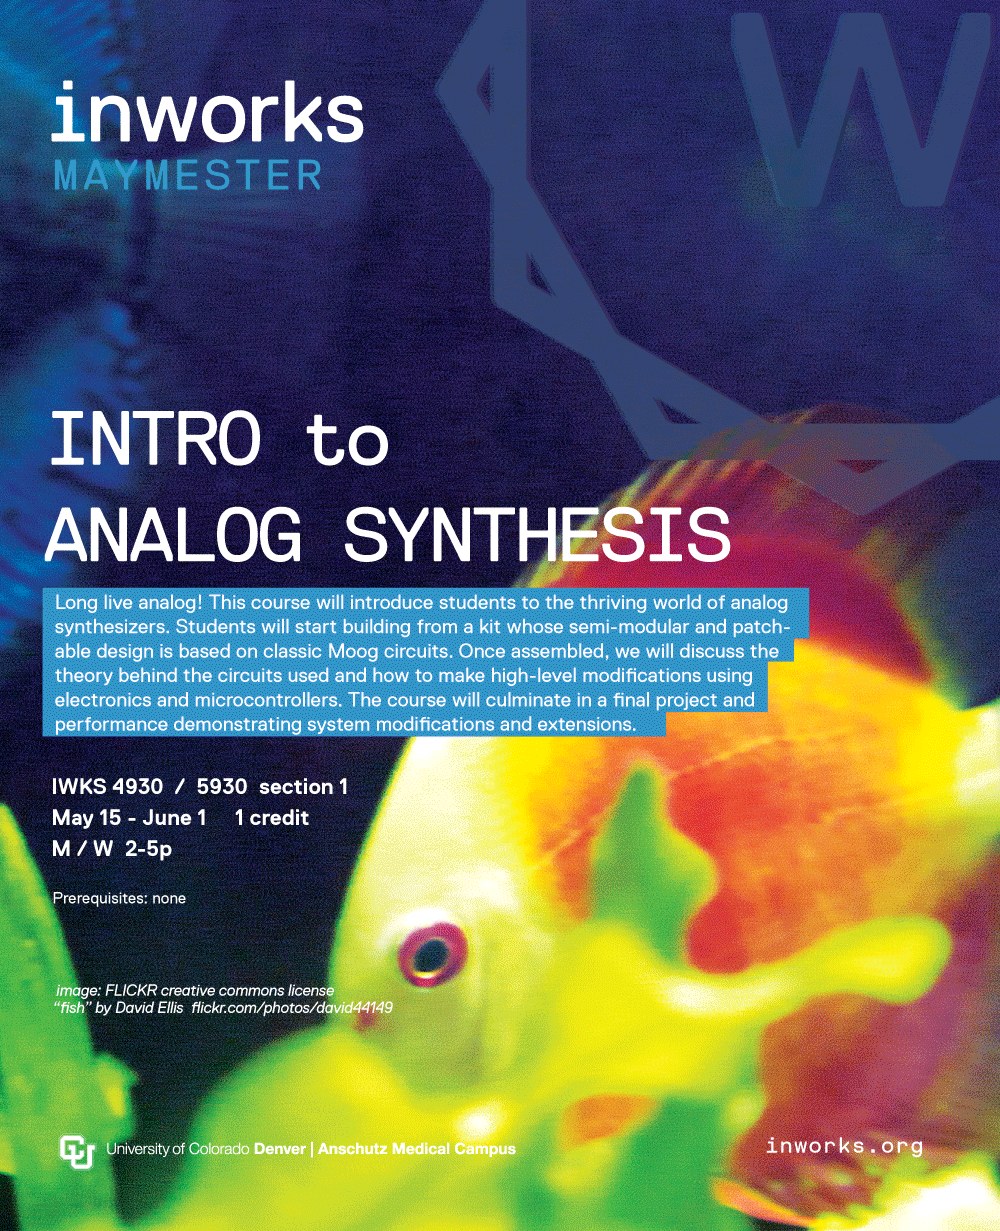 IWKS_2017_synth_maymester.png